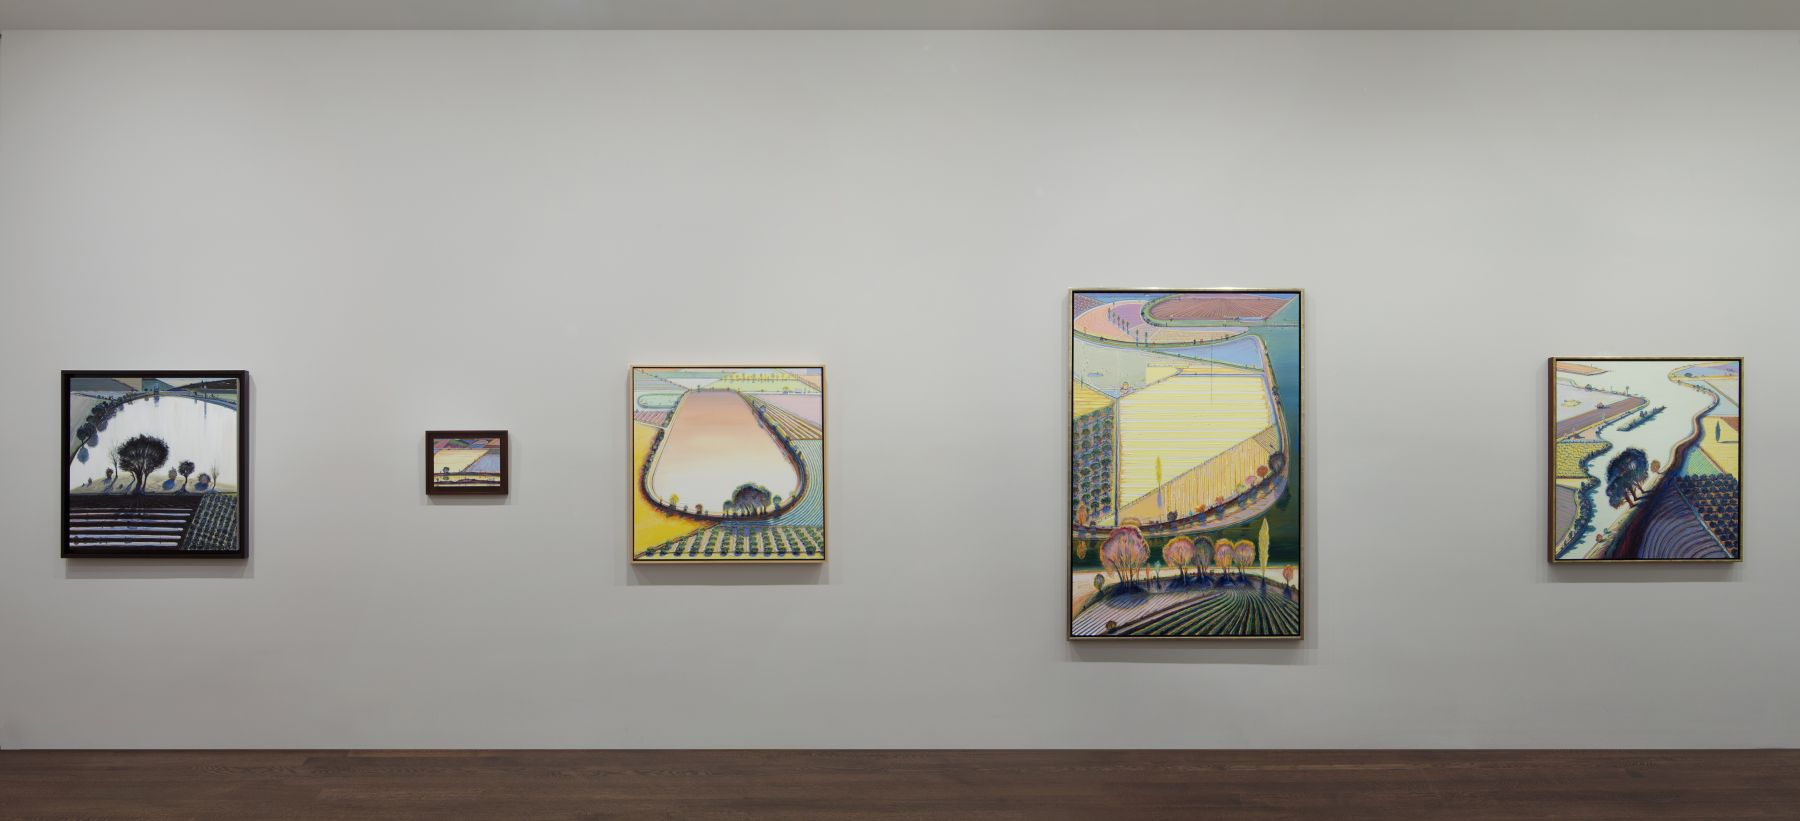 Installation view of Wayne Thiebaud: A Retrospective, October 22 - November 29, 2012.